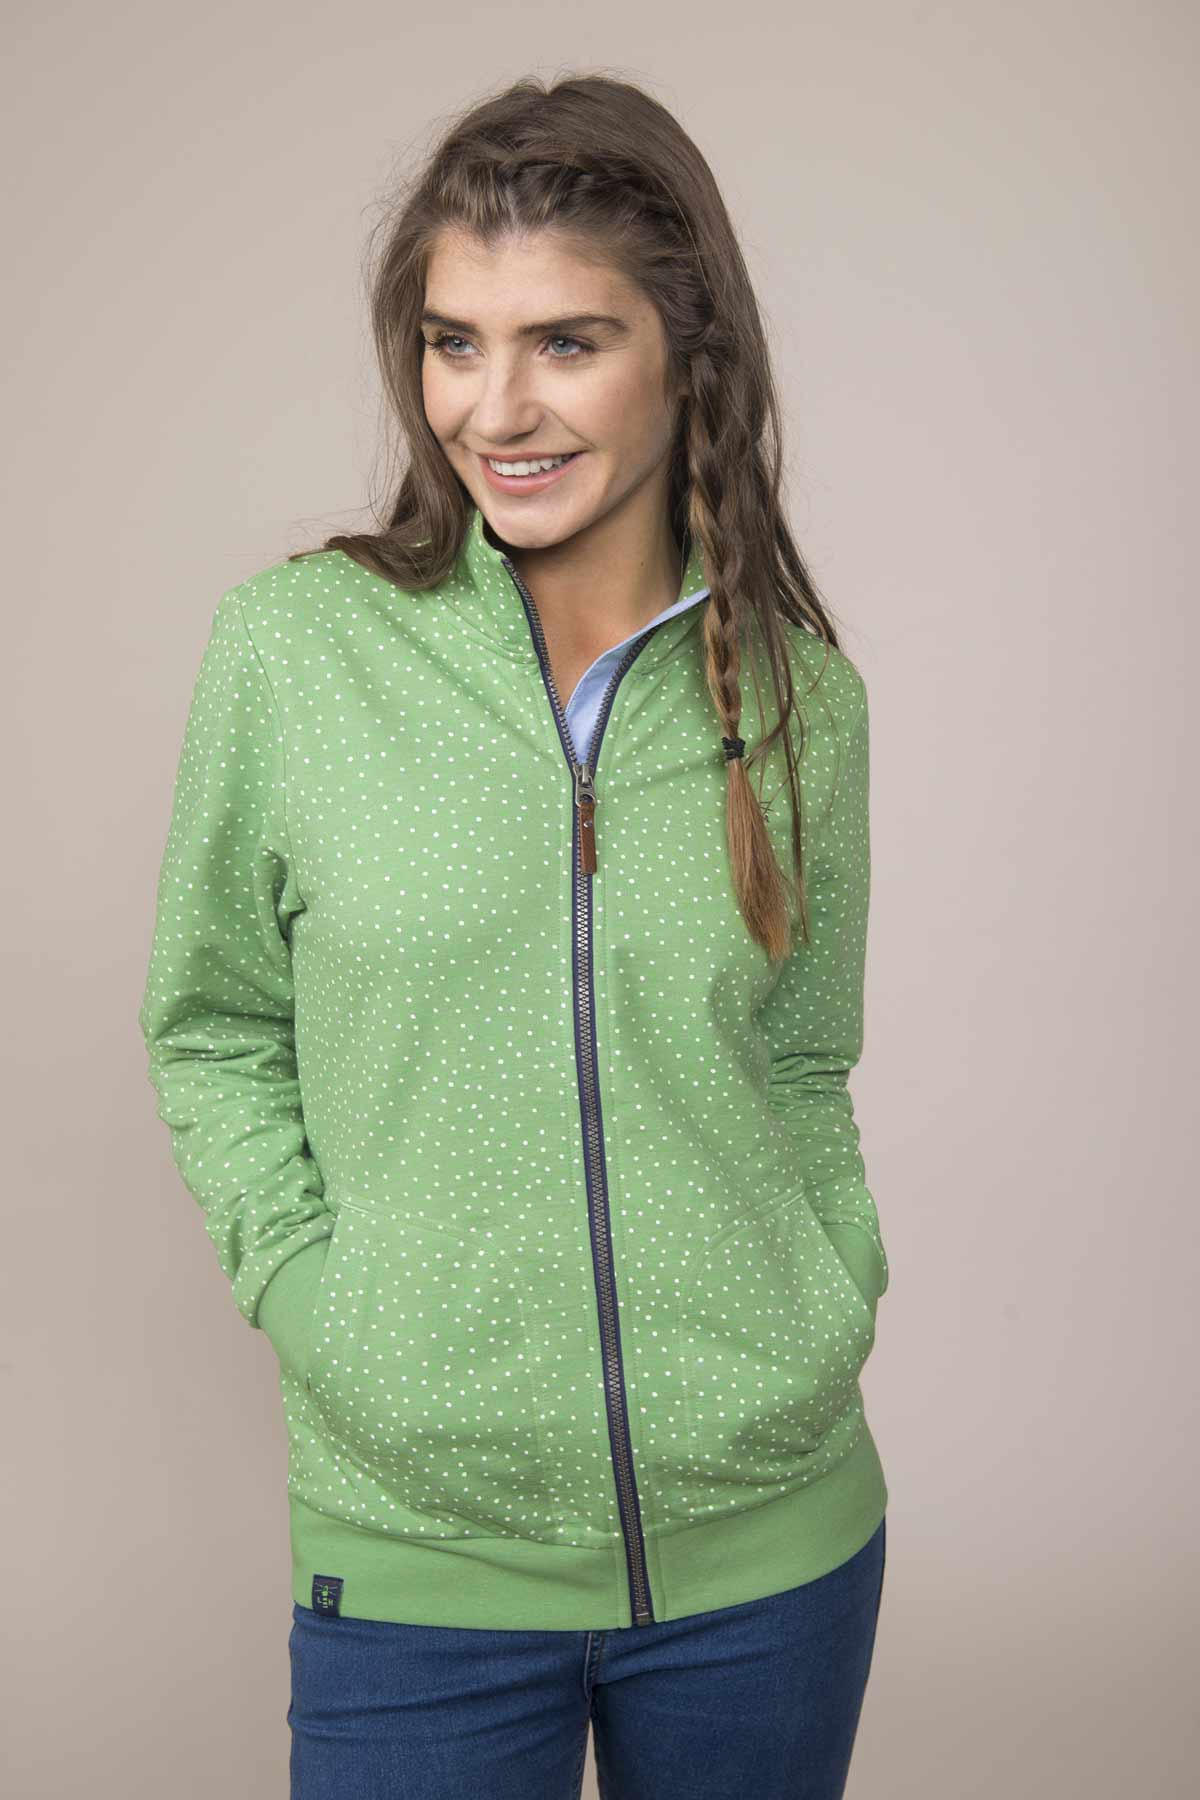 Lighthouse Tyrella women's pistachio dot zip through top